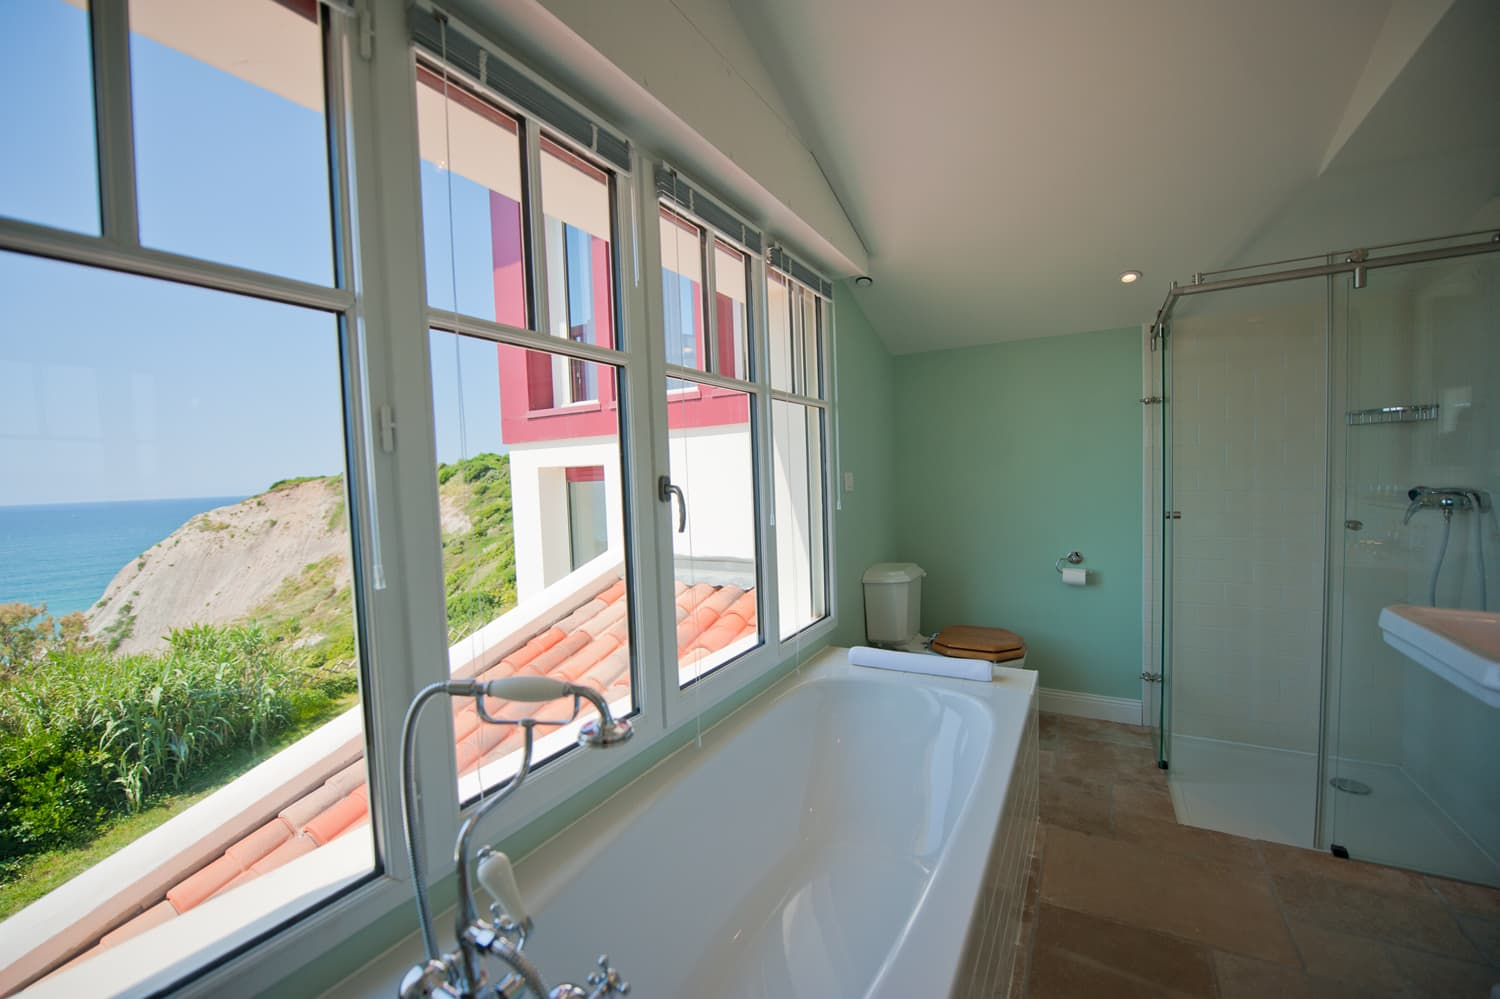 Bathroom in Biarritz holiday villa